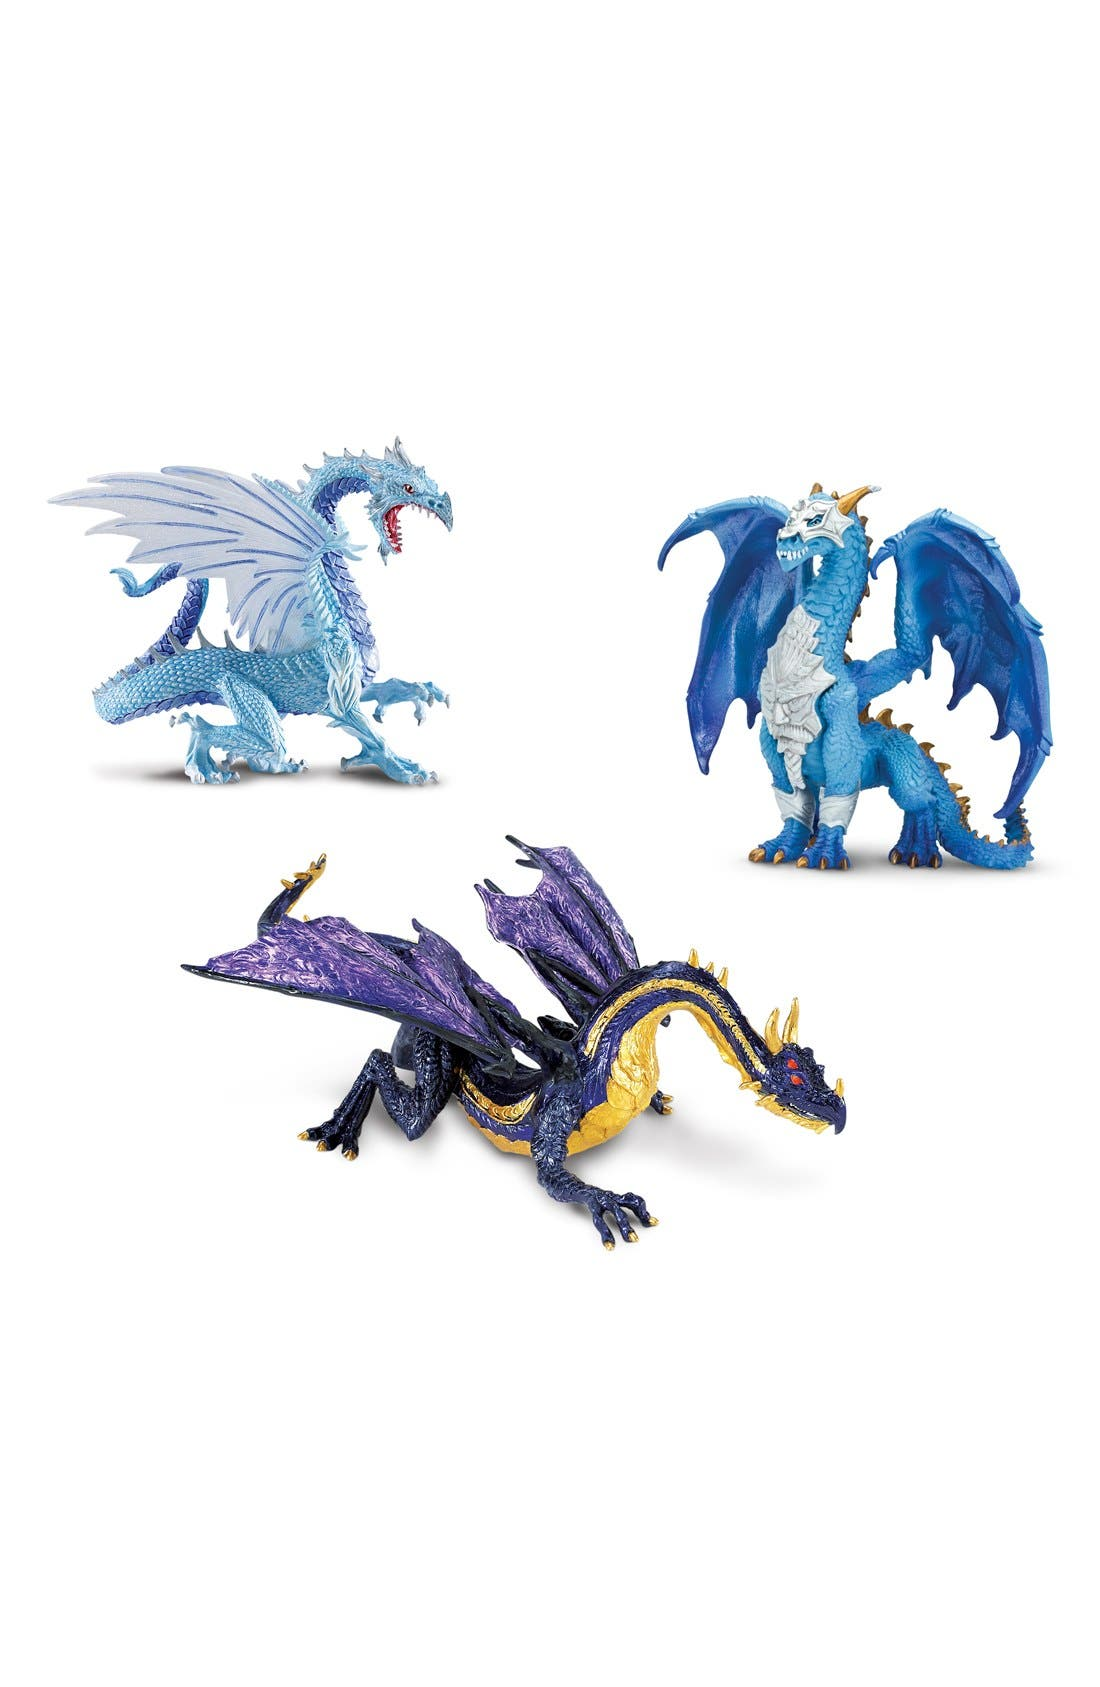 Safari Ltd. Dragon Figurines (Set of 3)